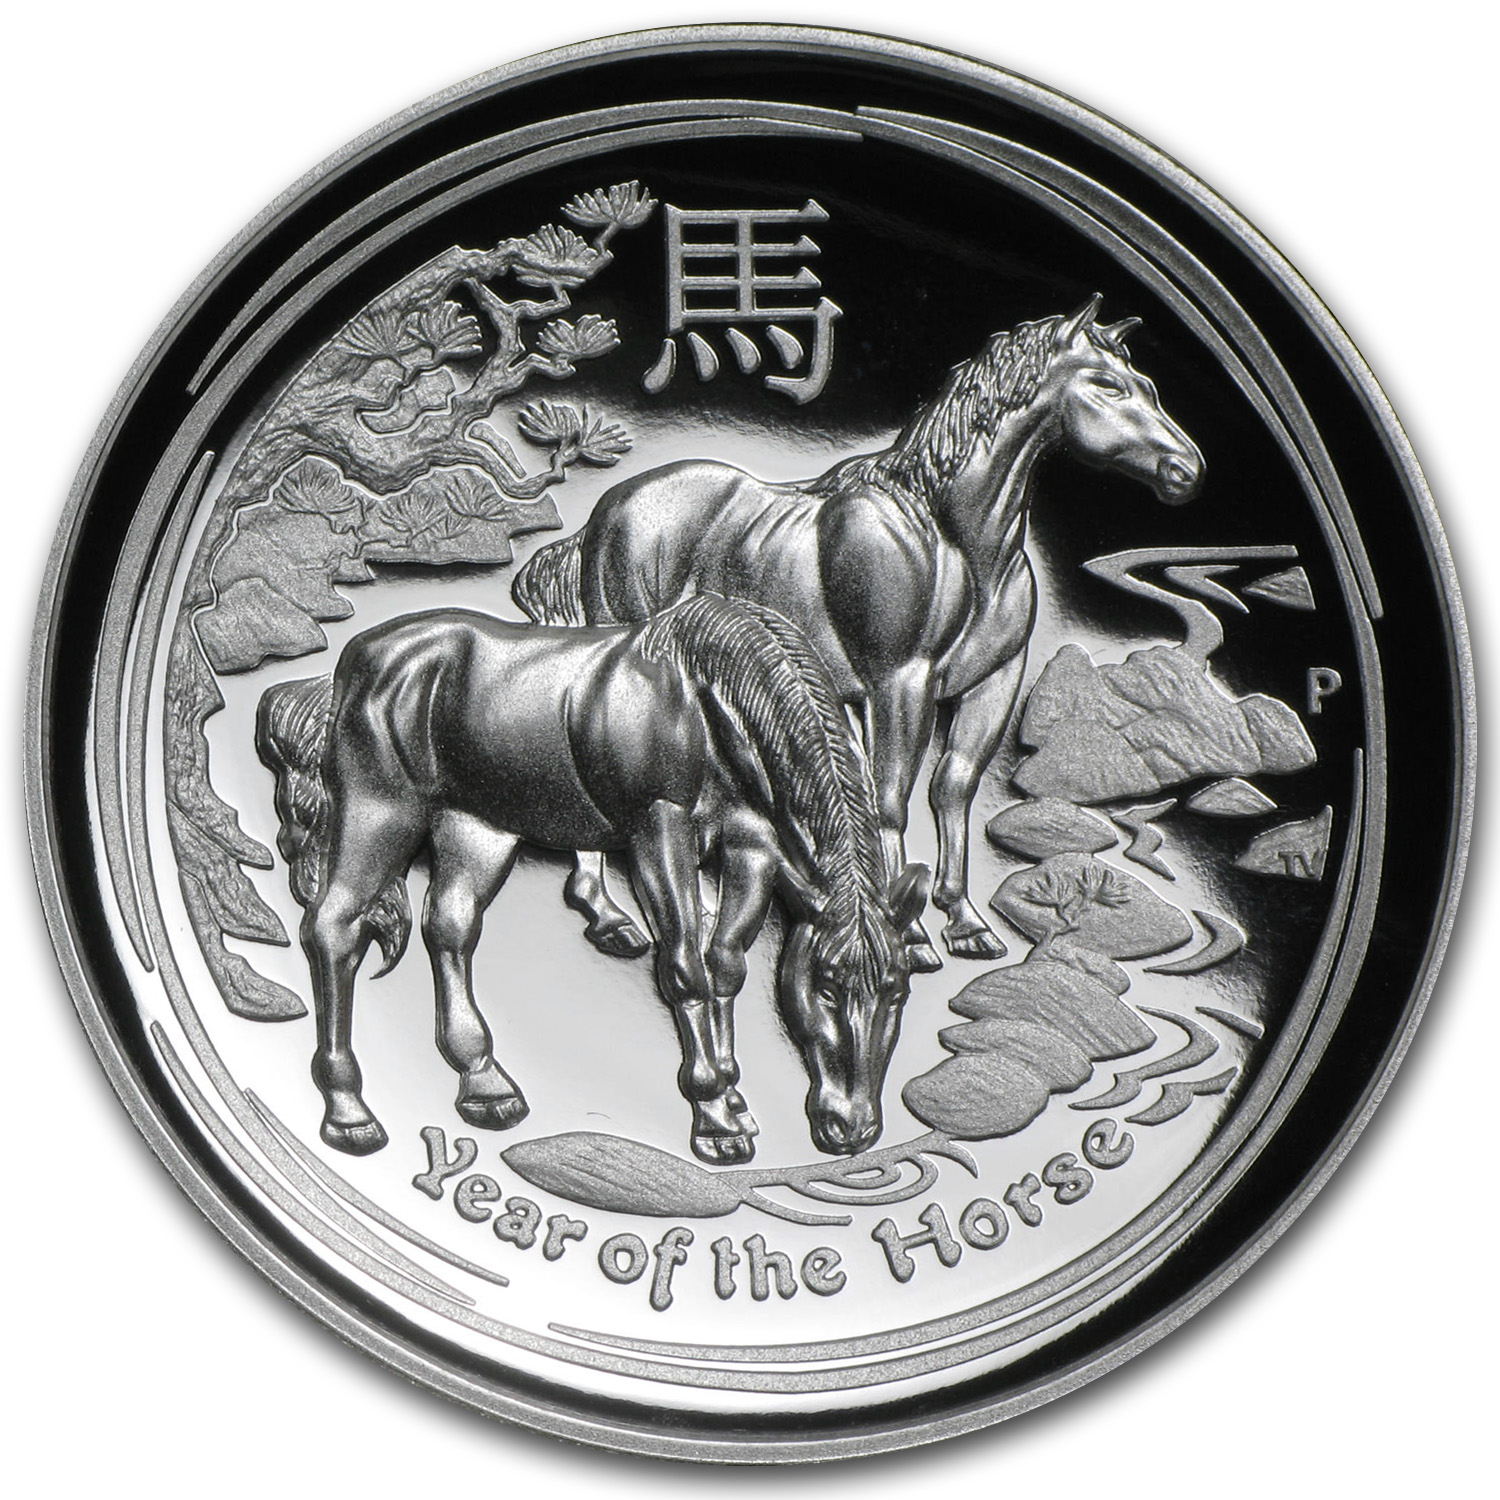 2014 1 oz Silver Australian Year of the Horse Proof (High Relief)